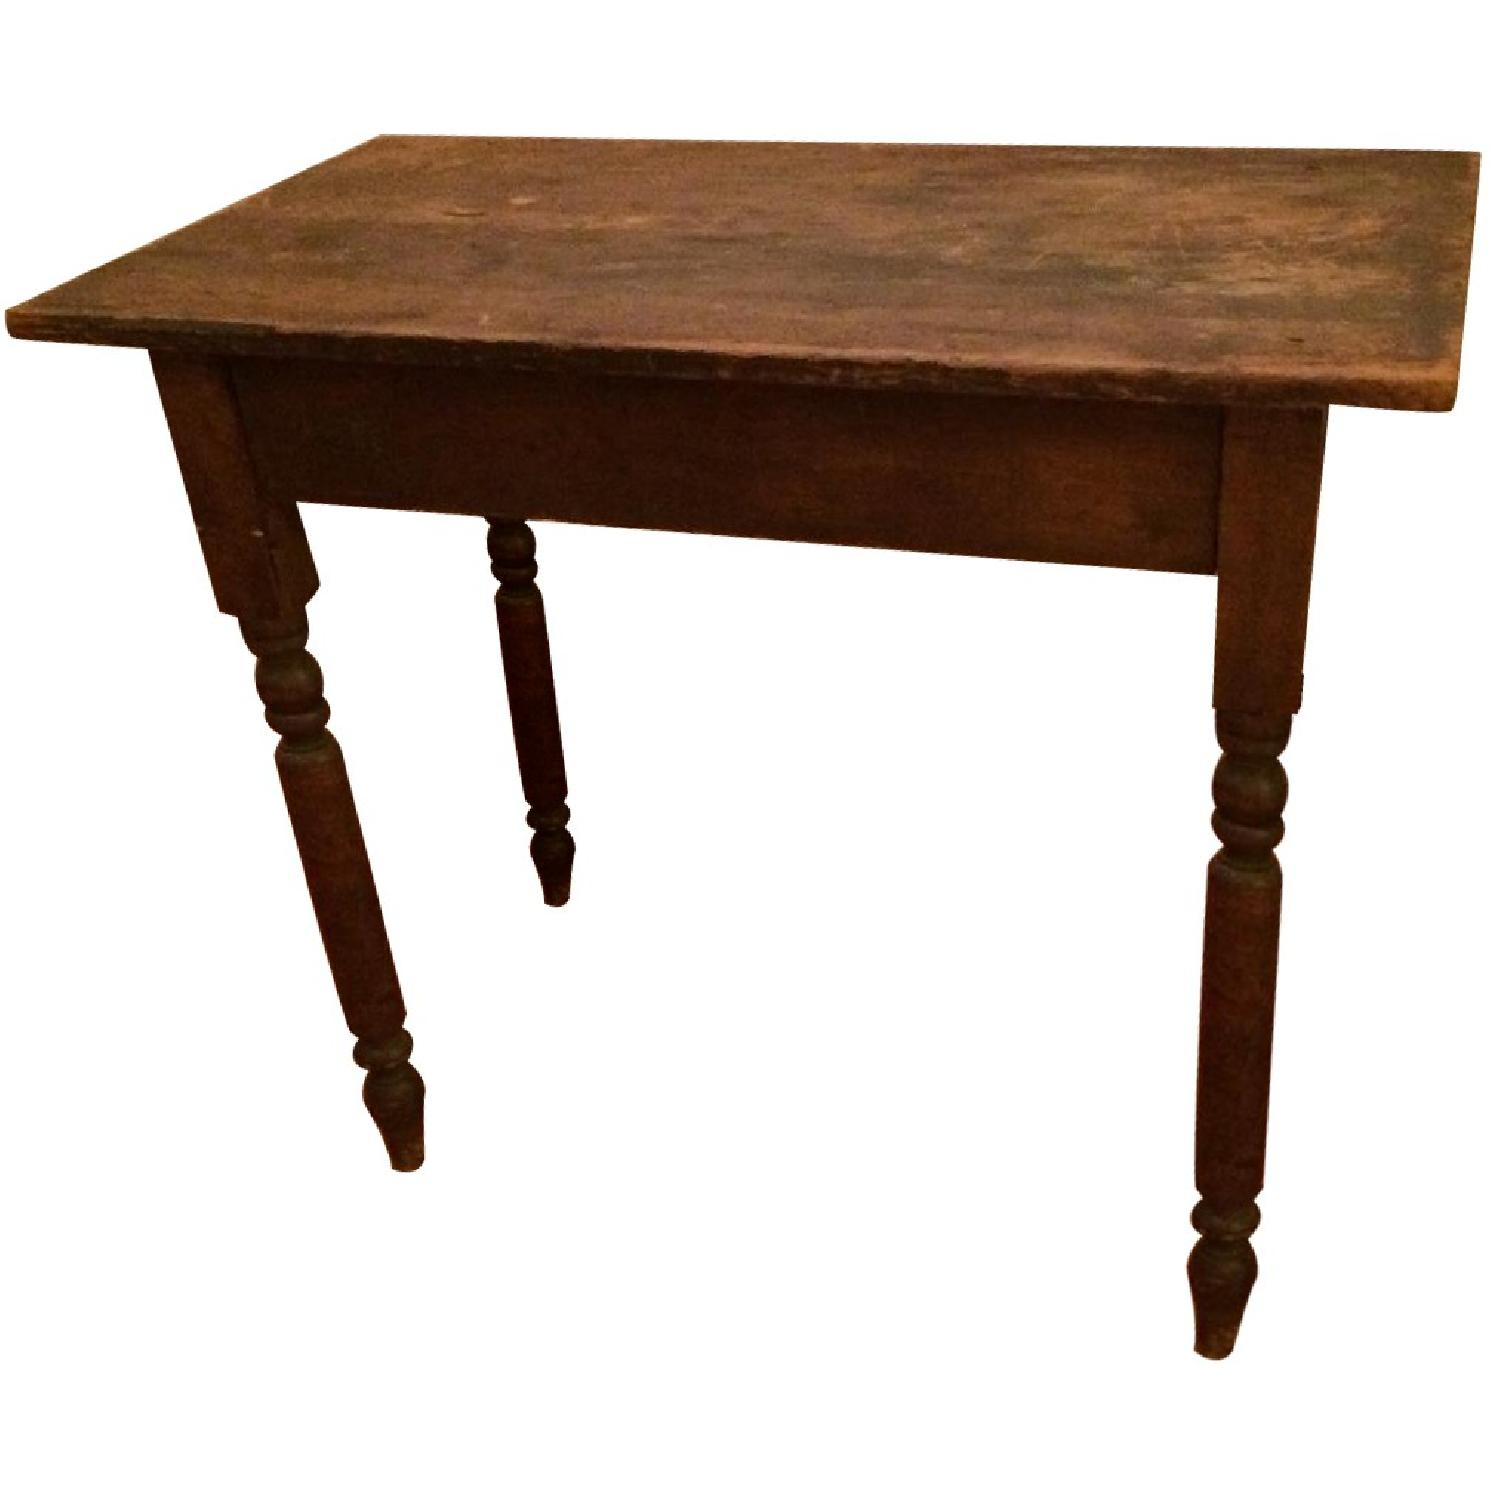 Antique Small Rustic Table - image-0